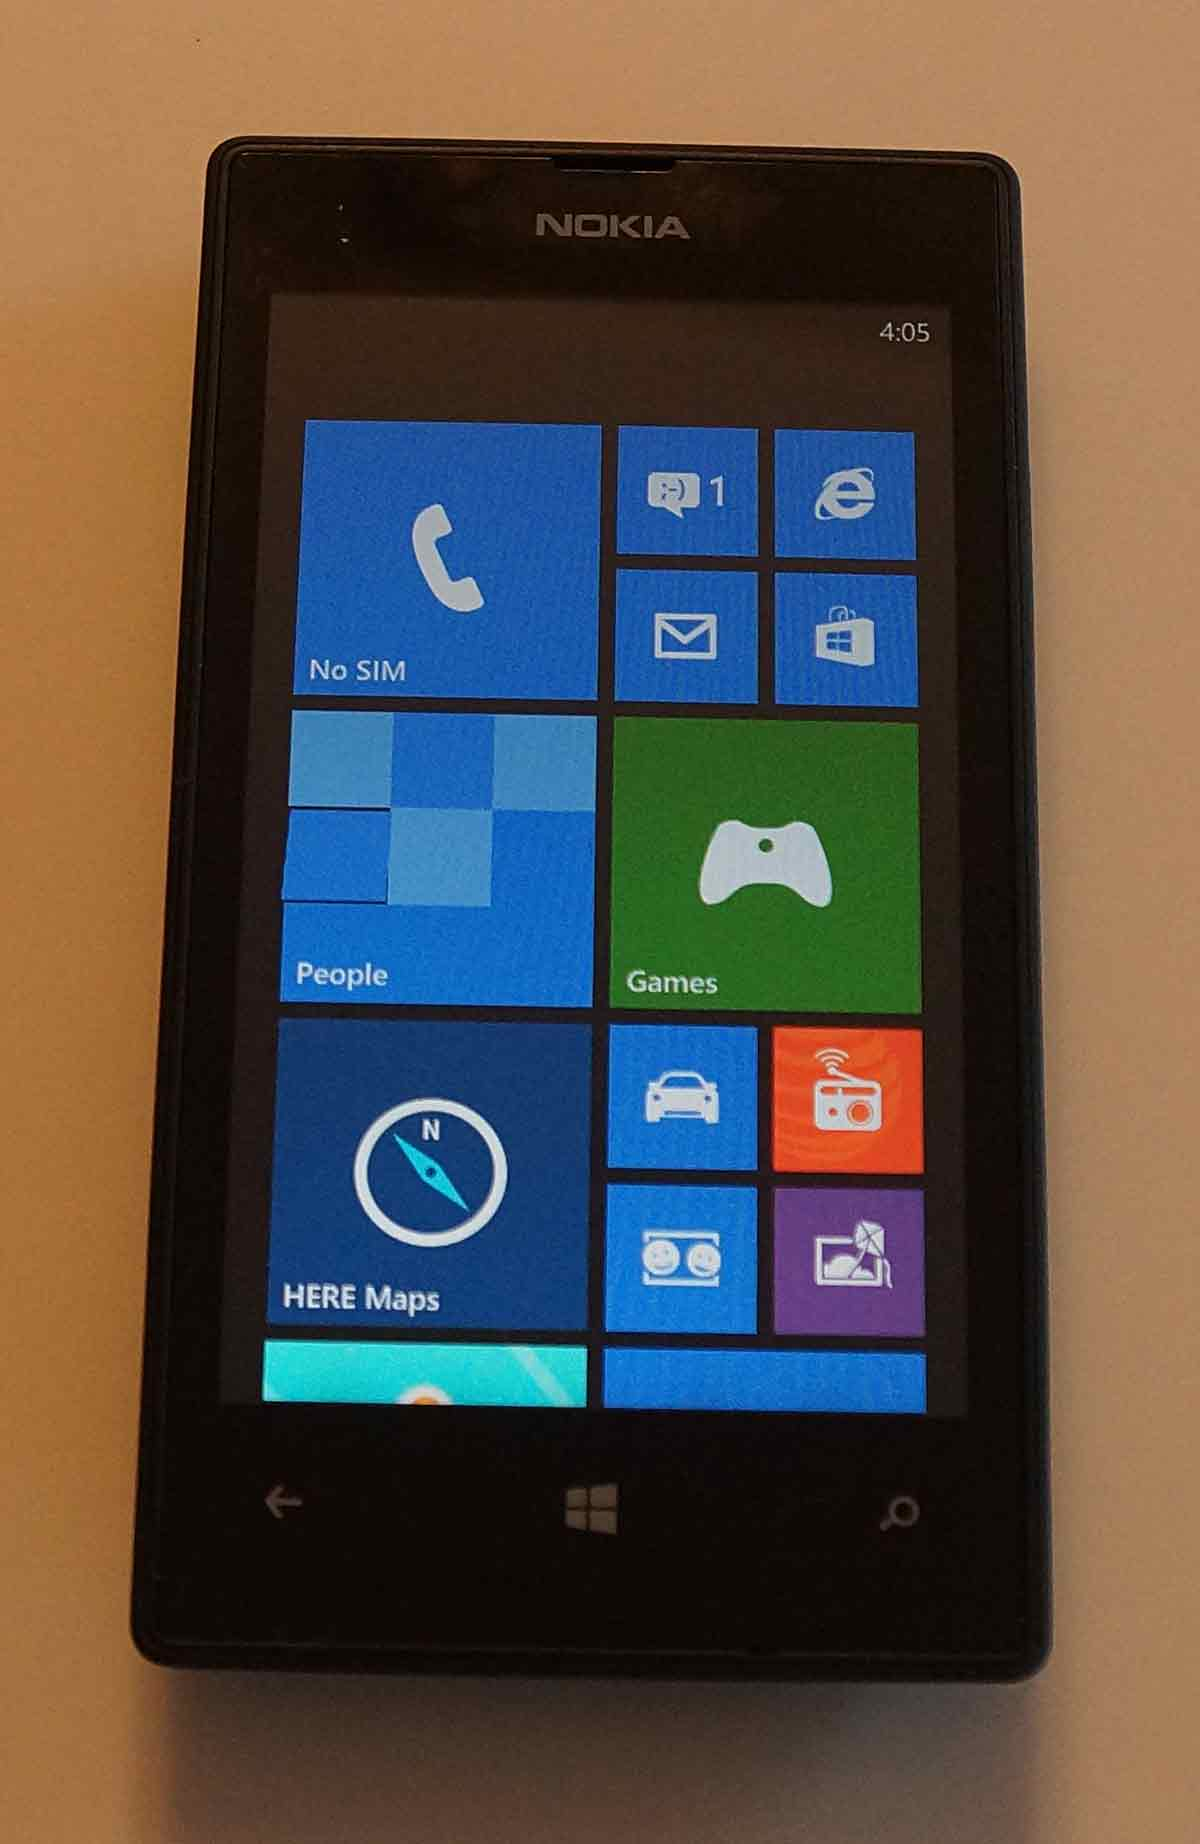 Windows phone 81 nokia 520 for videos and kids tech help home nokia 520 ccuart Image collections